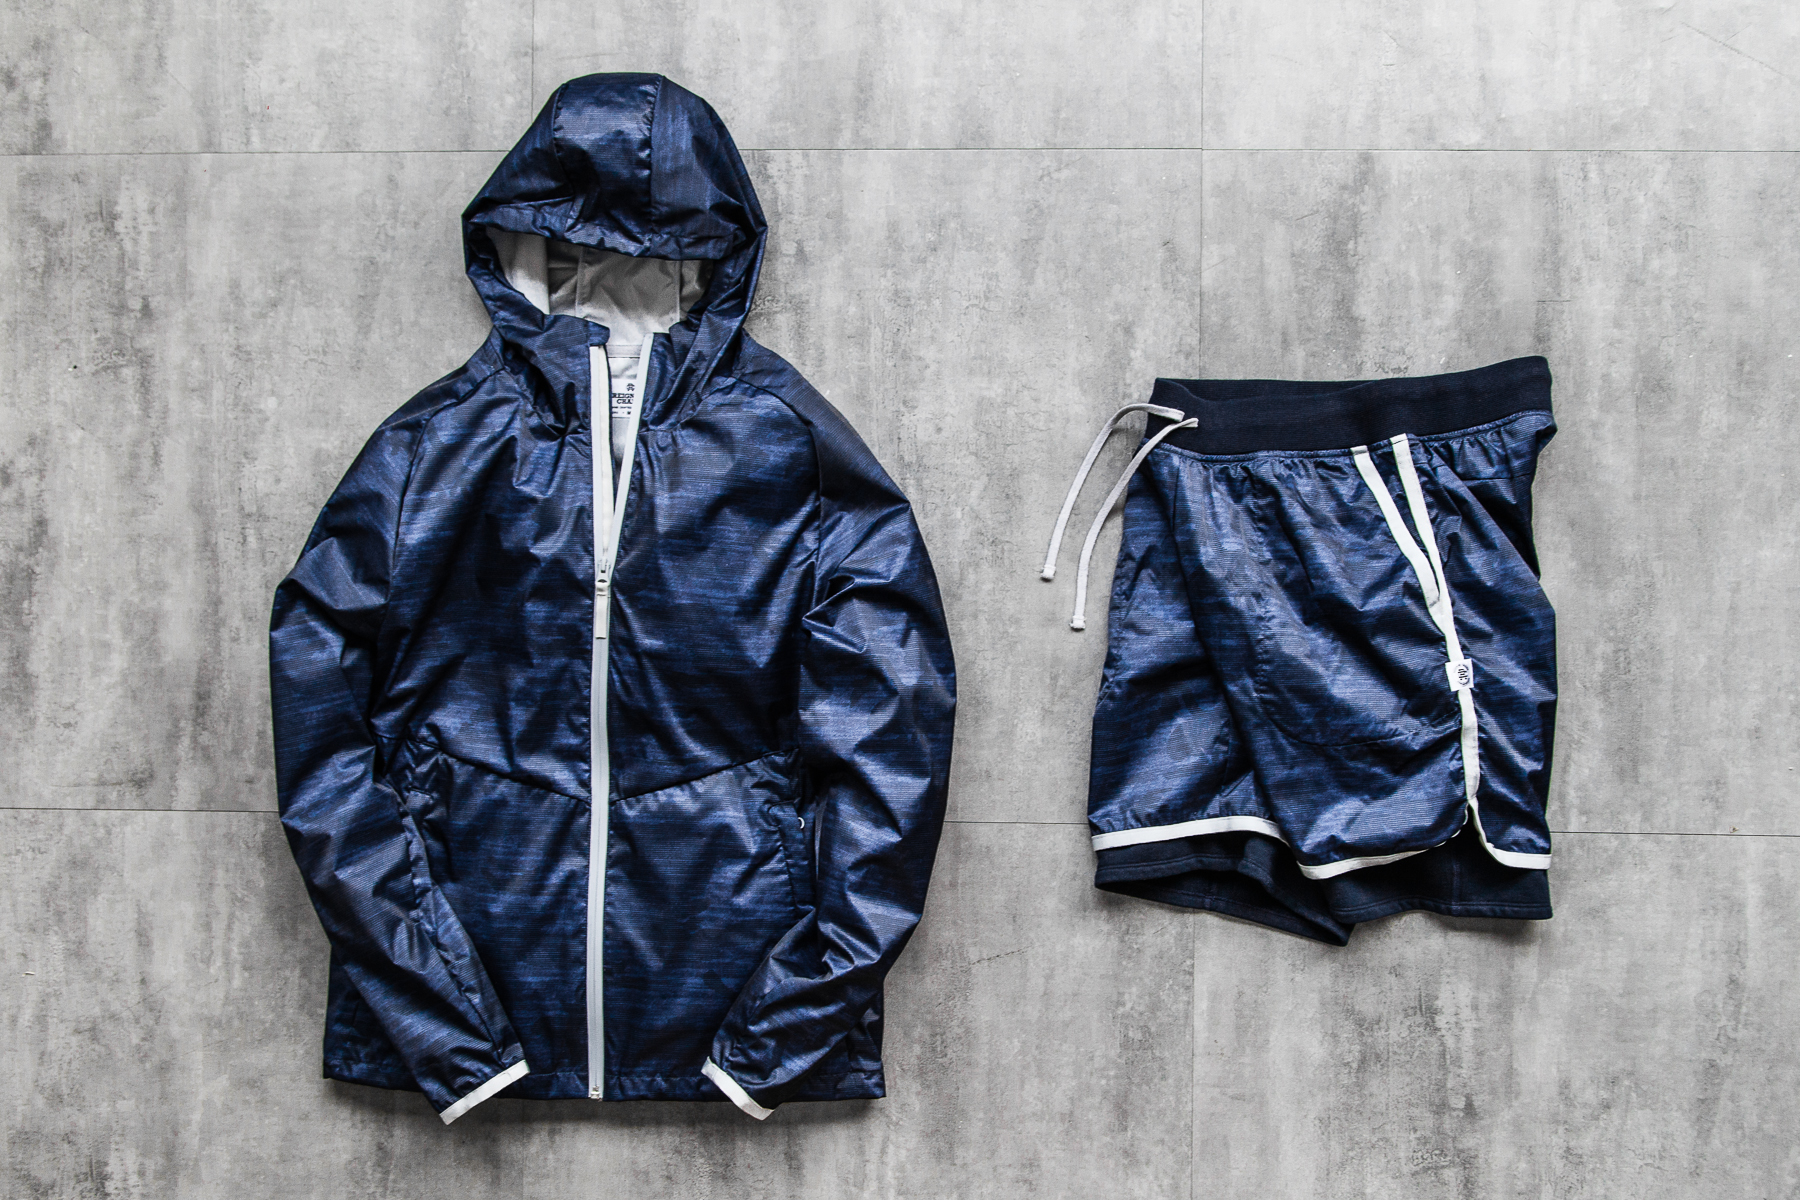 http://hypebeast.com/2014/5/reigning-champ-2014-spring-summer-sportswear-collection